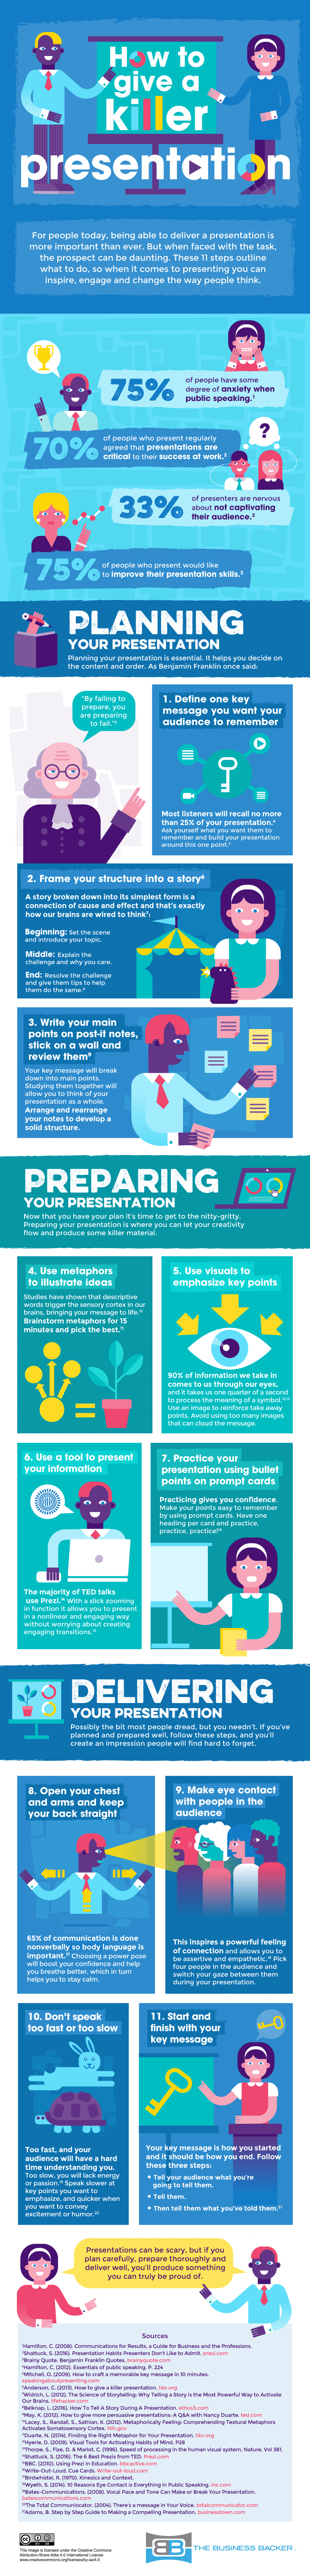 Infographic about improving your presentation skills.